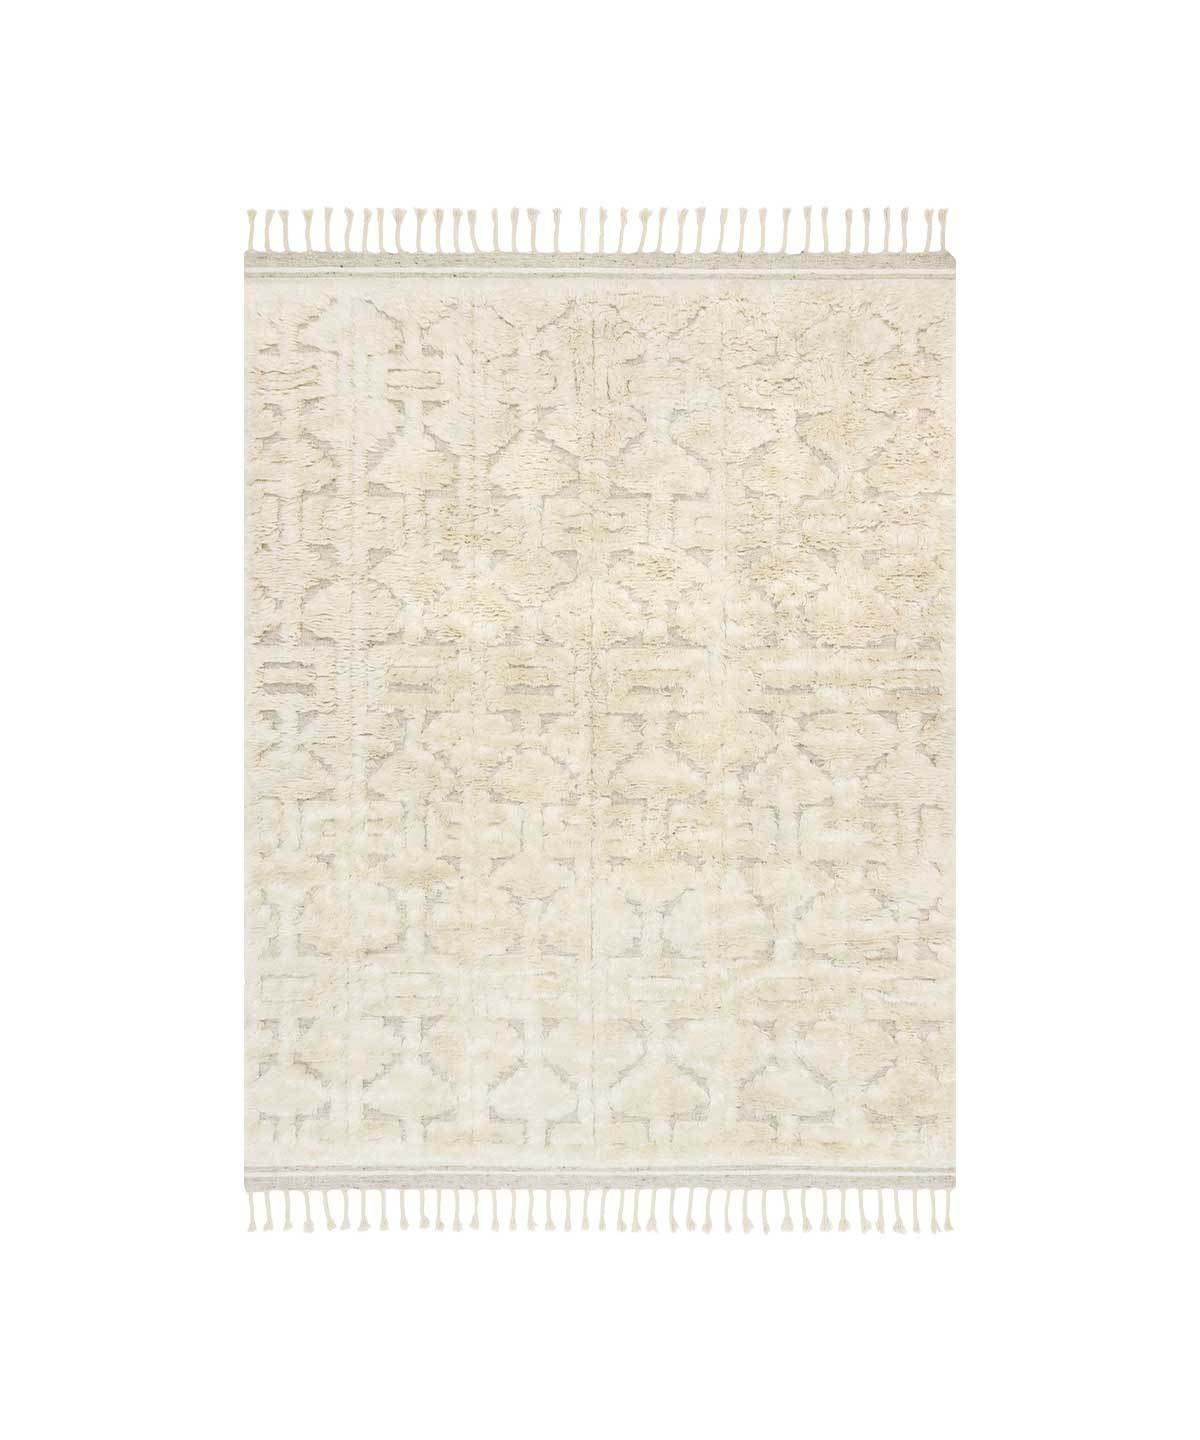 Hygge Rug in Oatmeal / Ivory by Loloi | TRNK